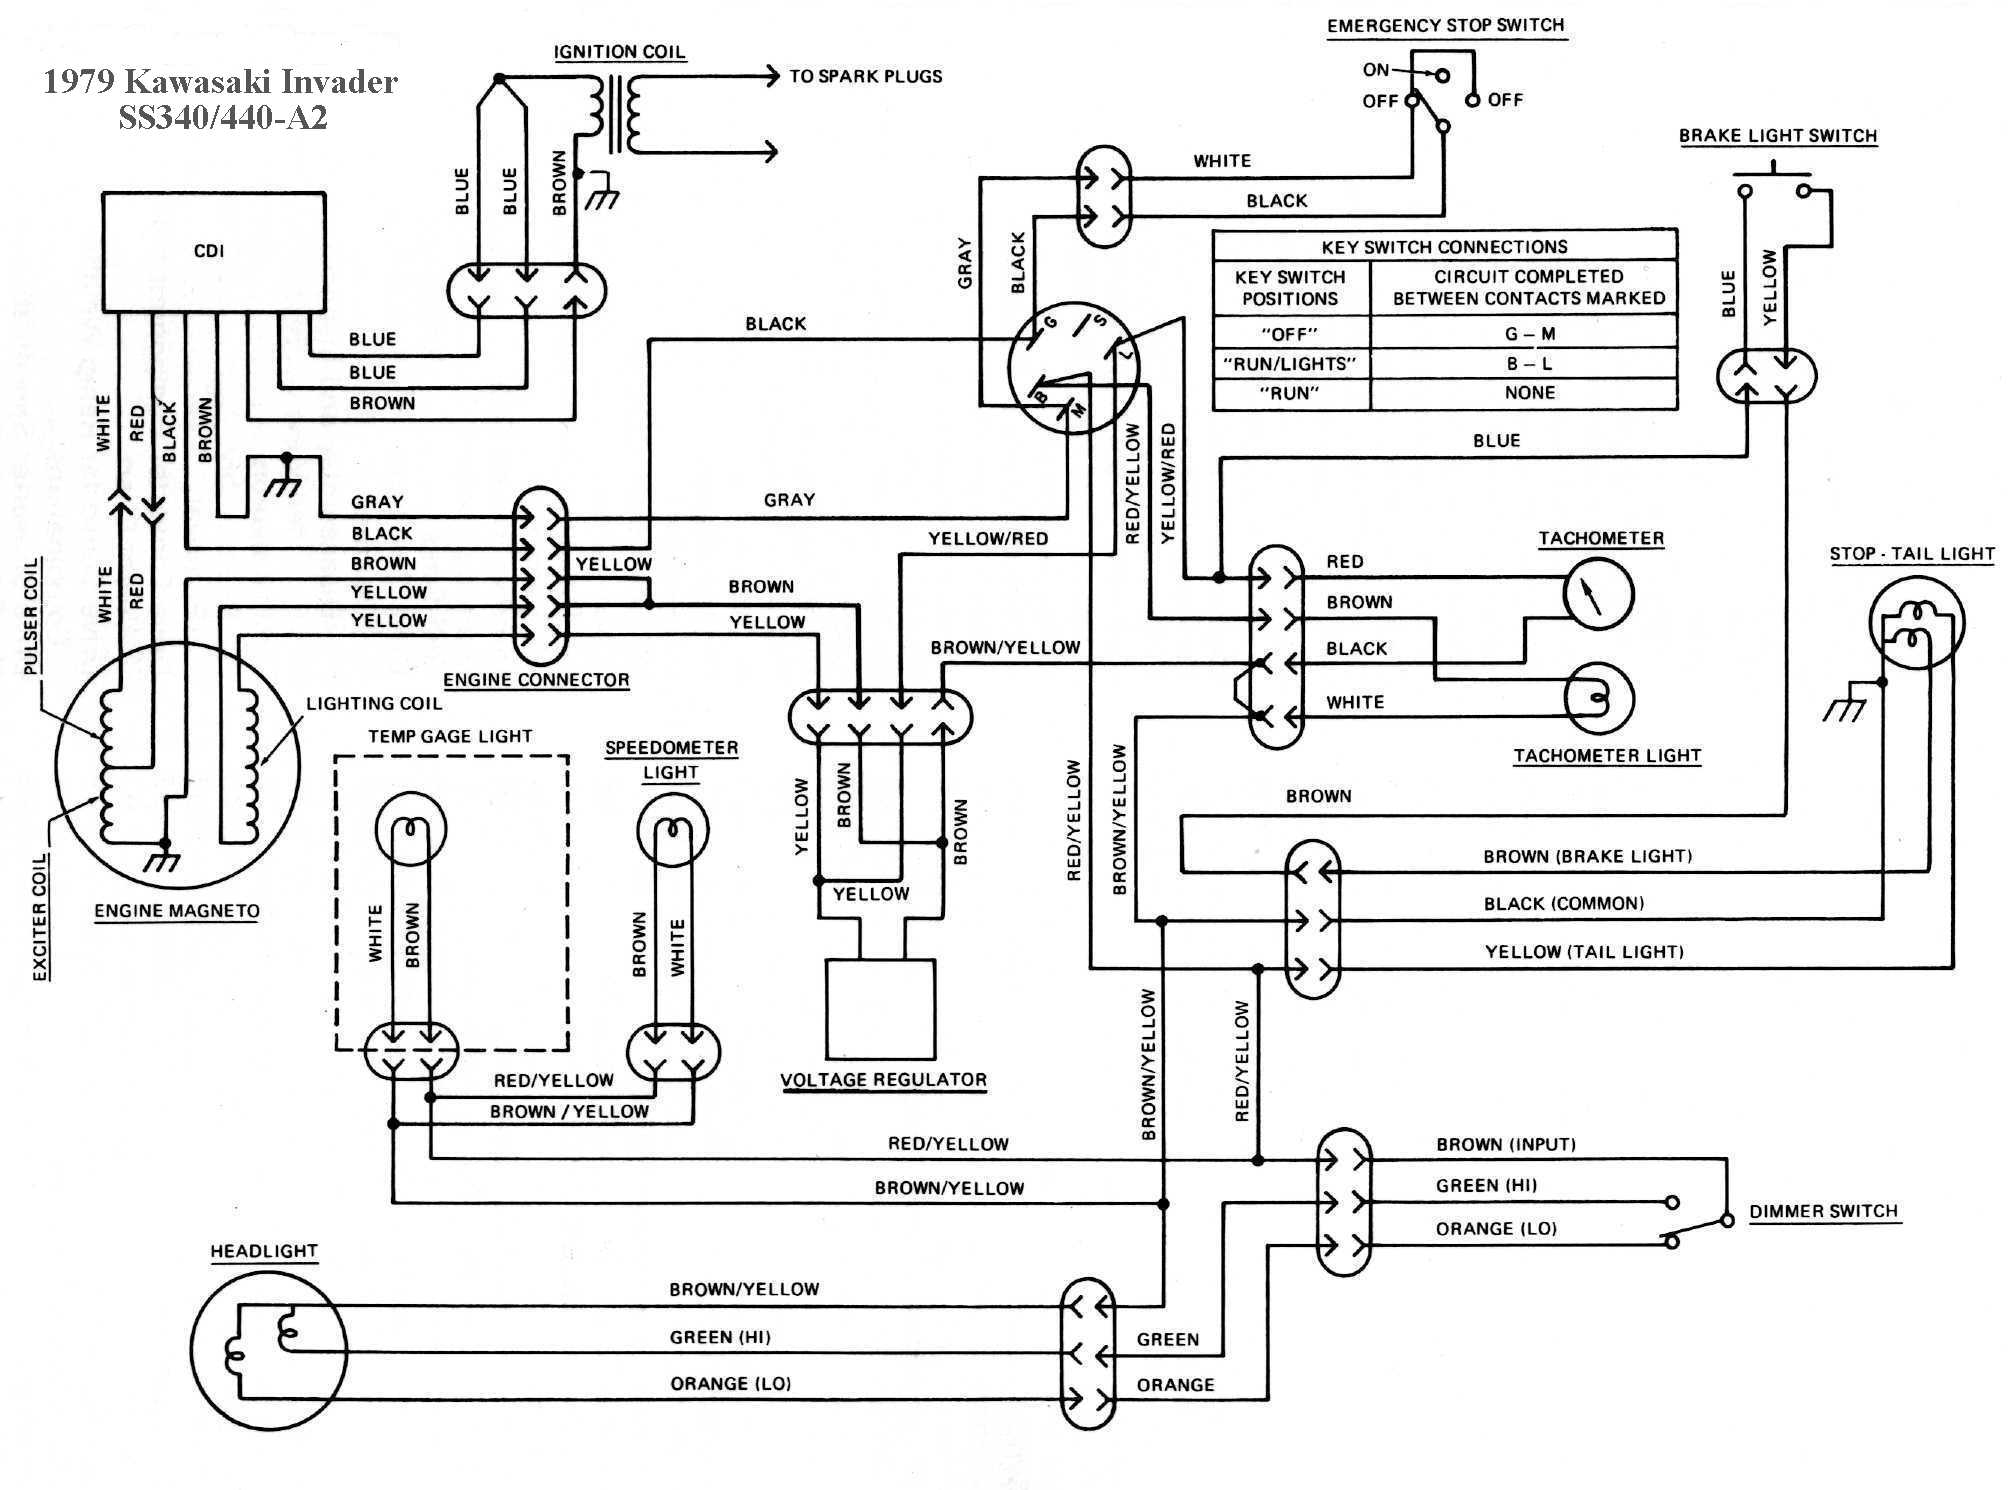 ss340a2 kawasaki invader snowmobile wiring diagrams kawasaki wiring diagram at gsmx.co